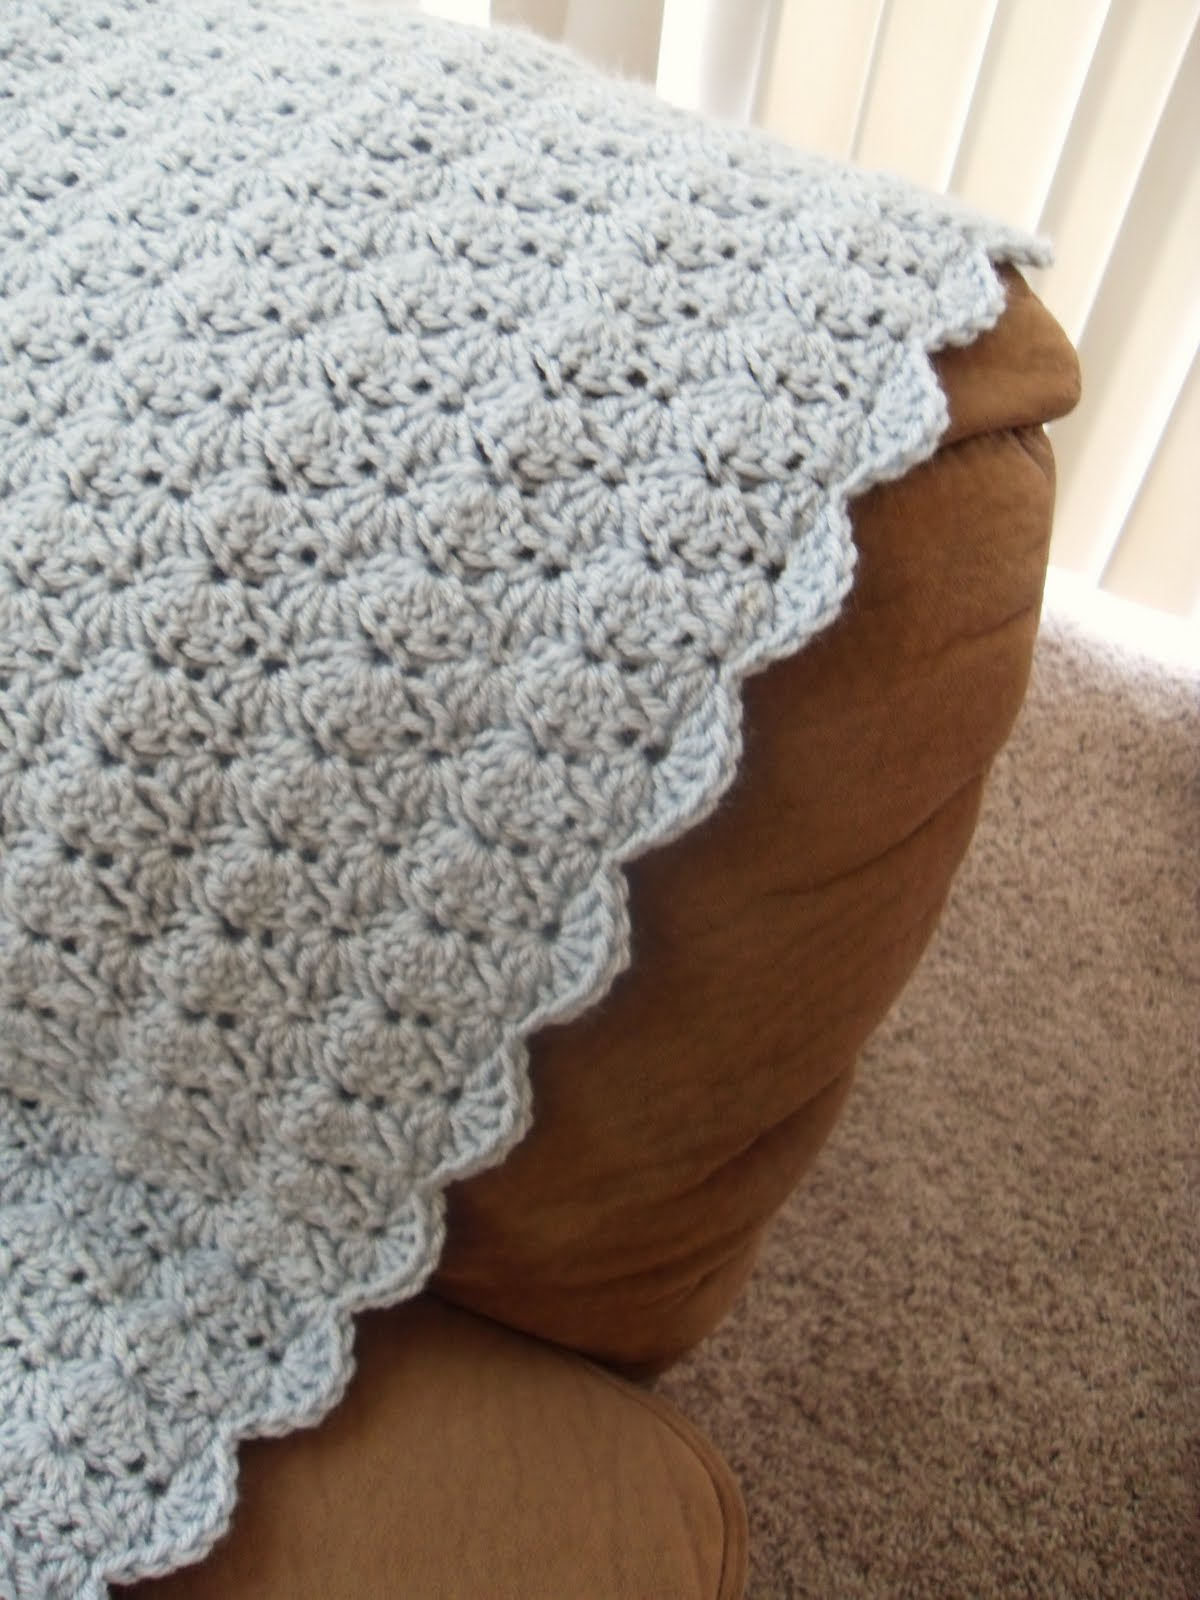 Sarahs Never-Ending Projects: Living Room Afghan Pattern